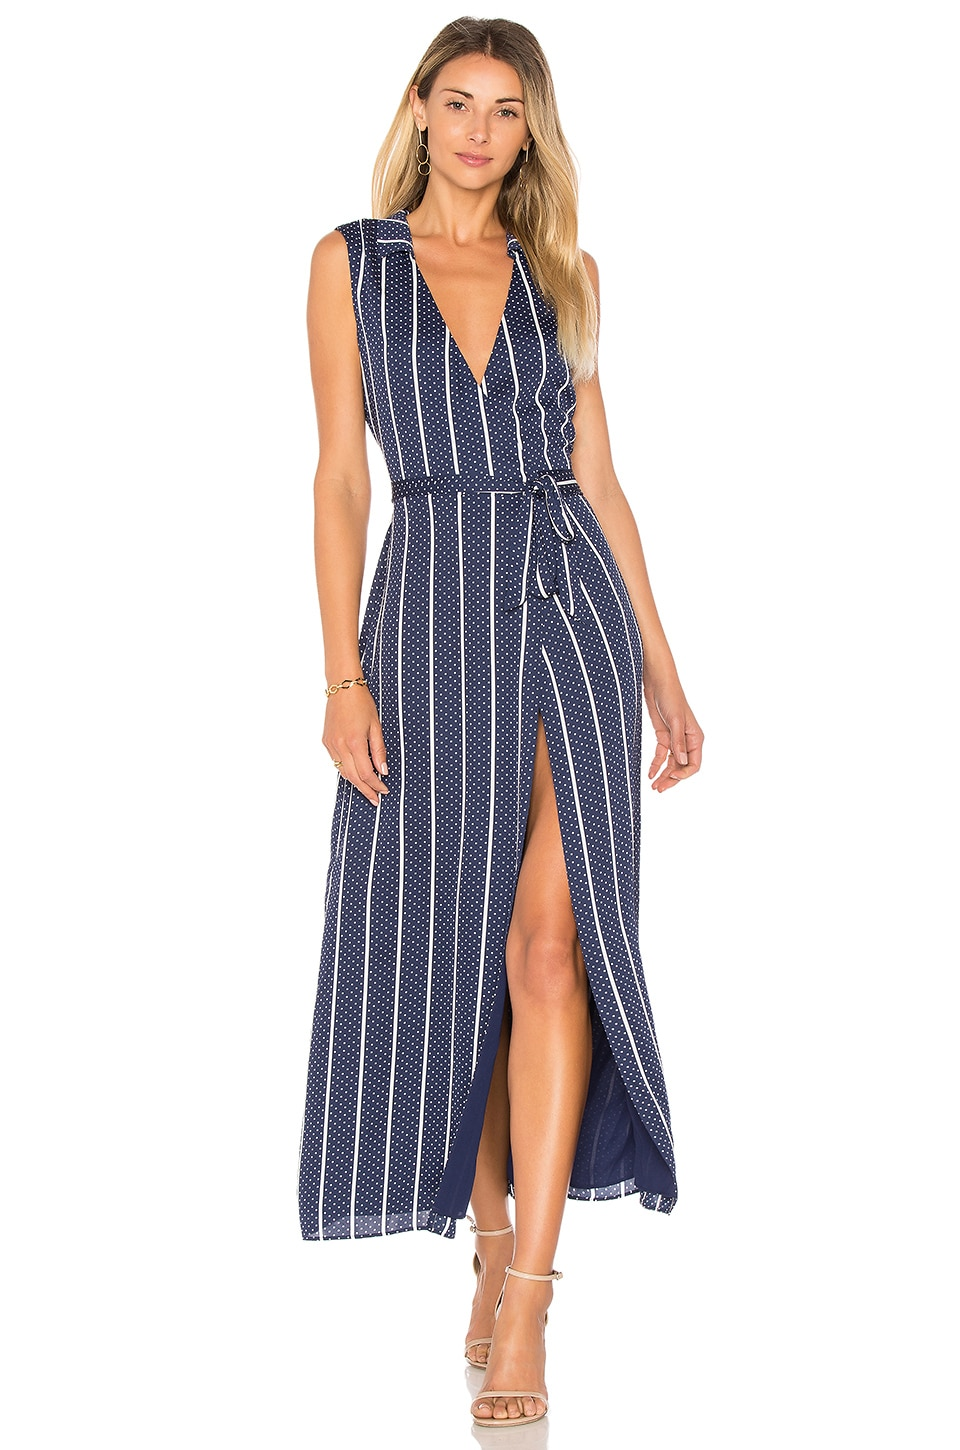 L'Academie The Wrap Dress in Navy Dot Stripe